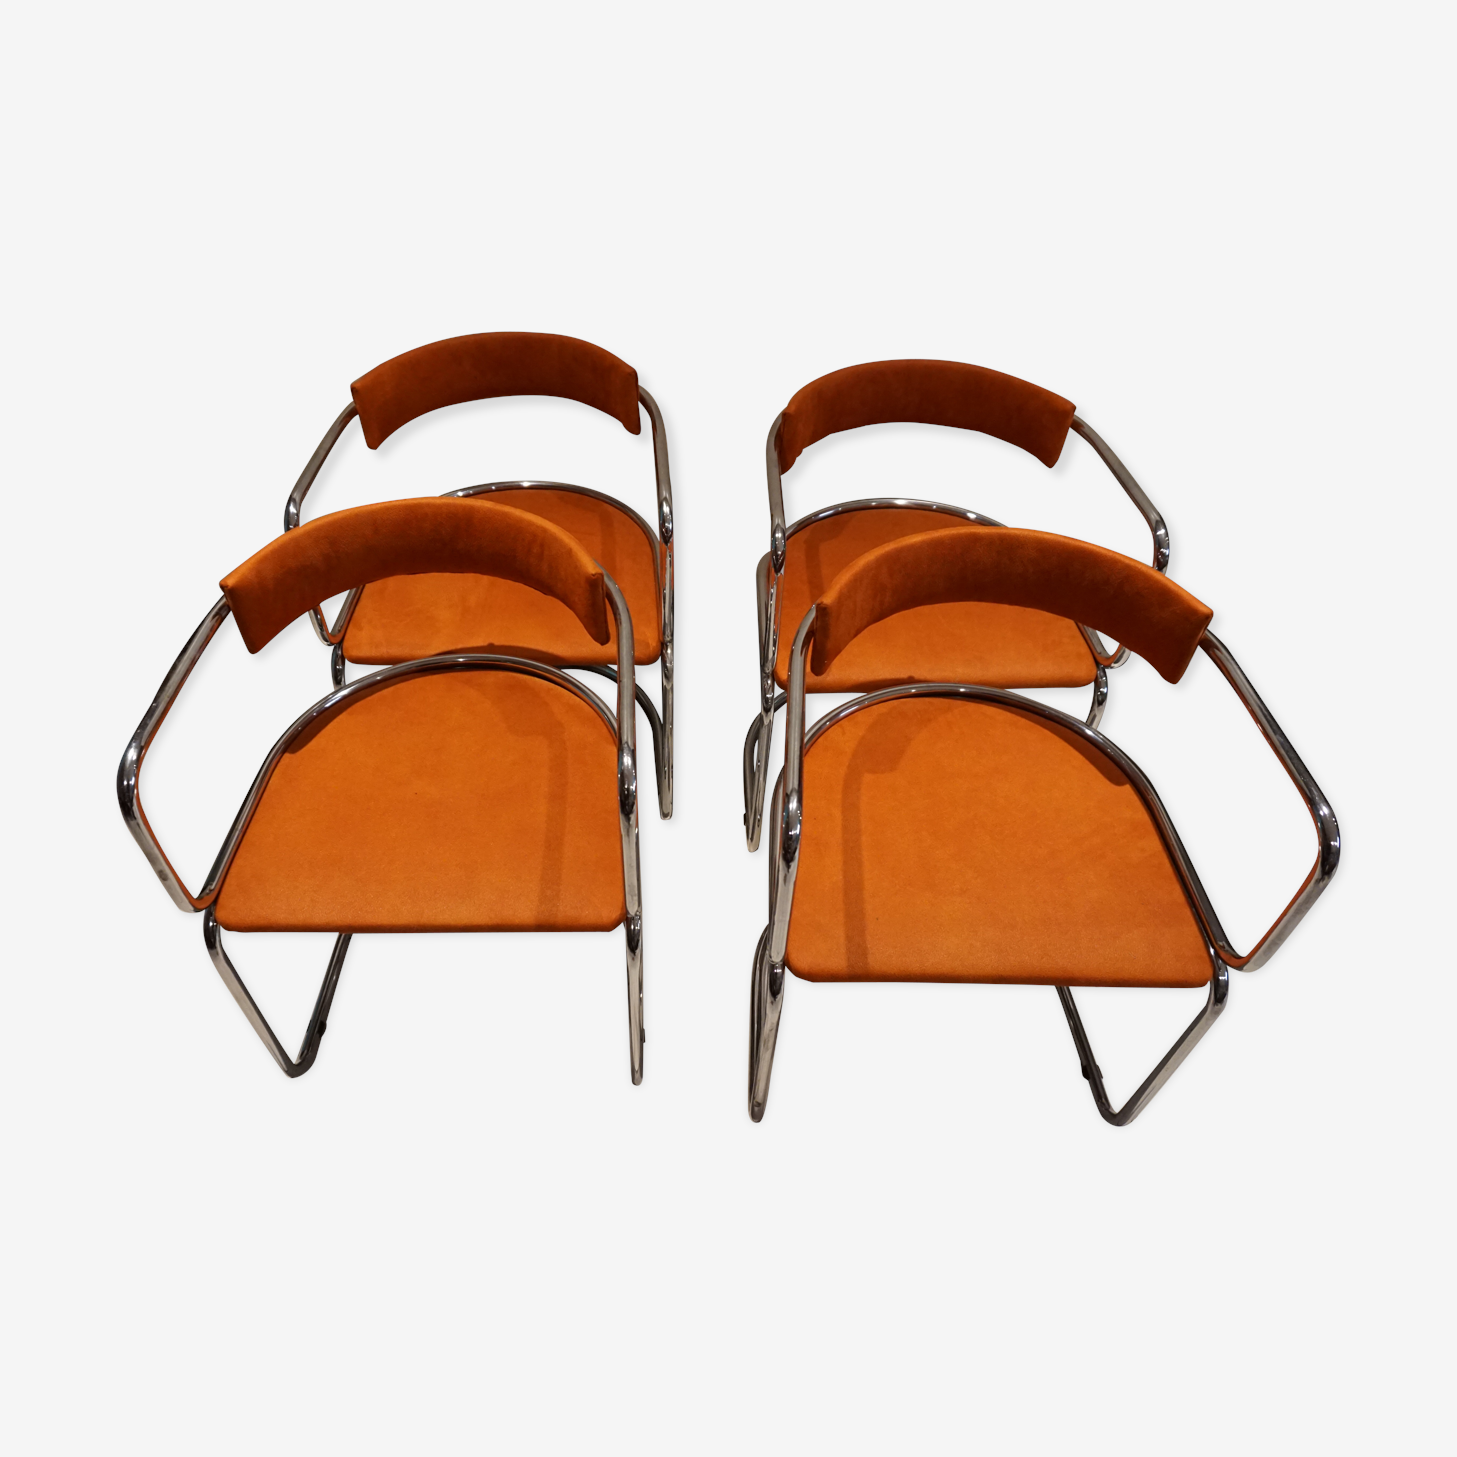 Series of chairs in chrome and fabrics Roche Bobois 1970